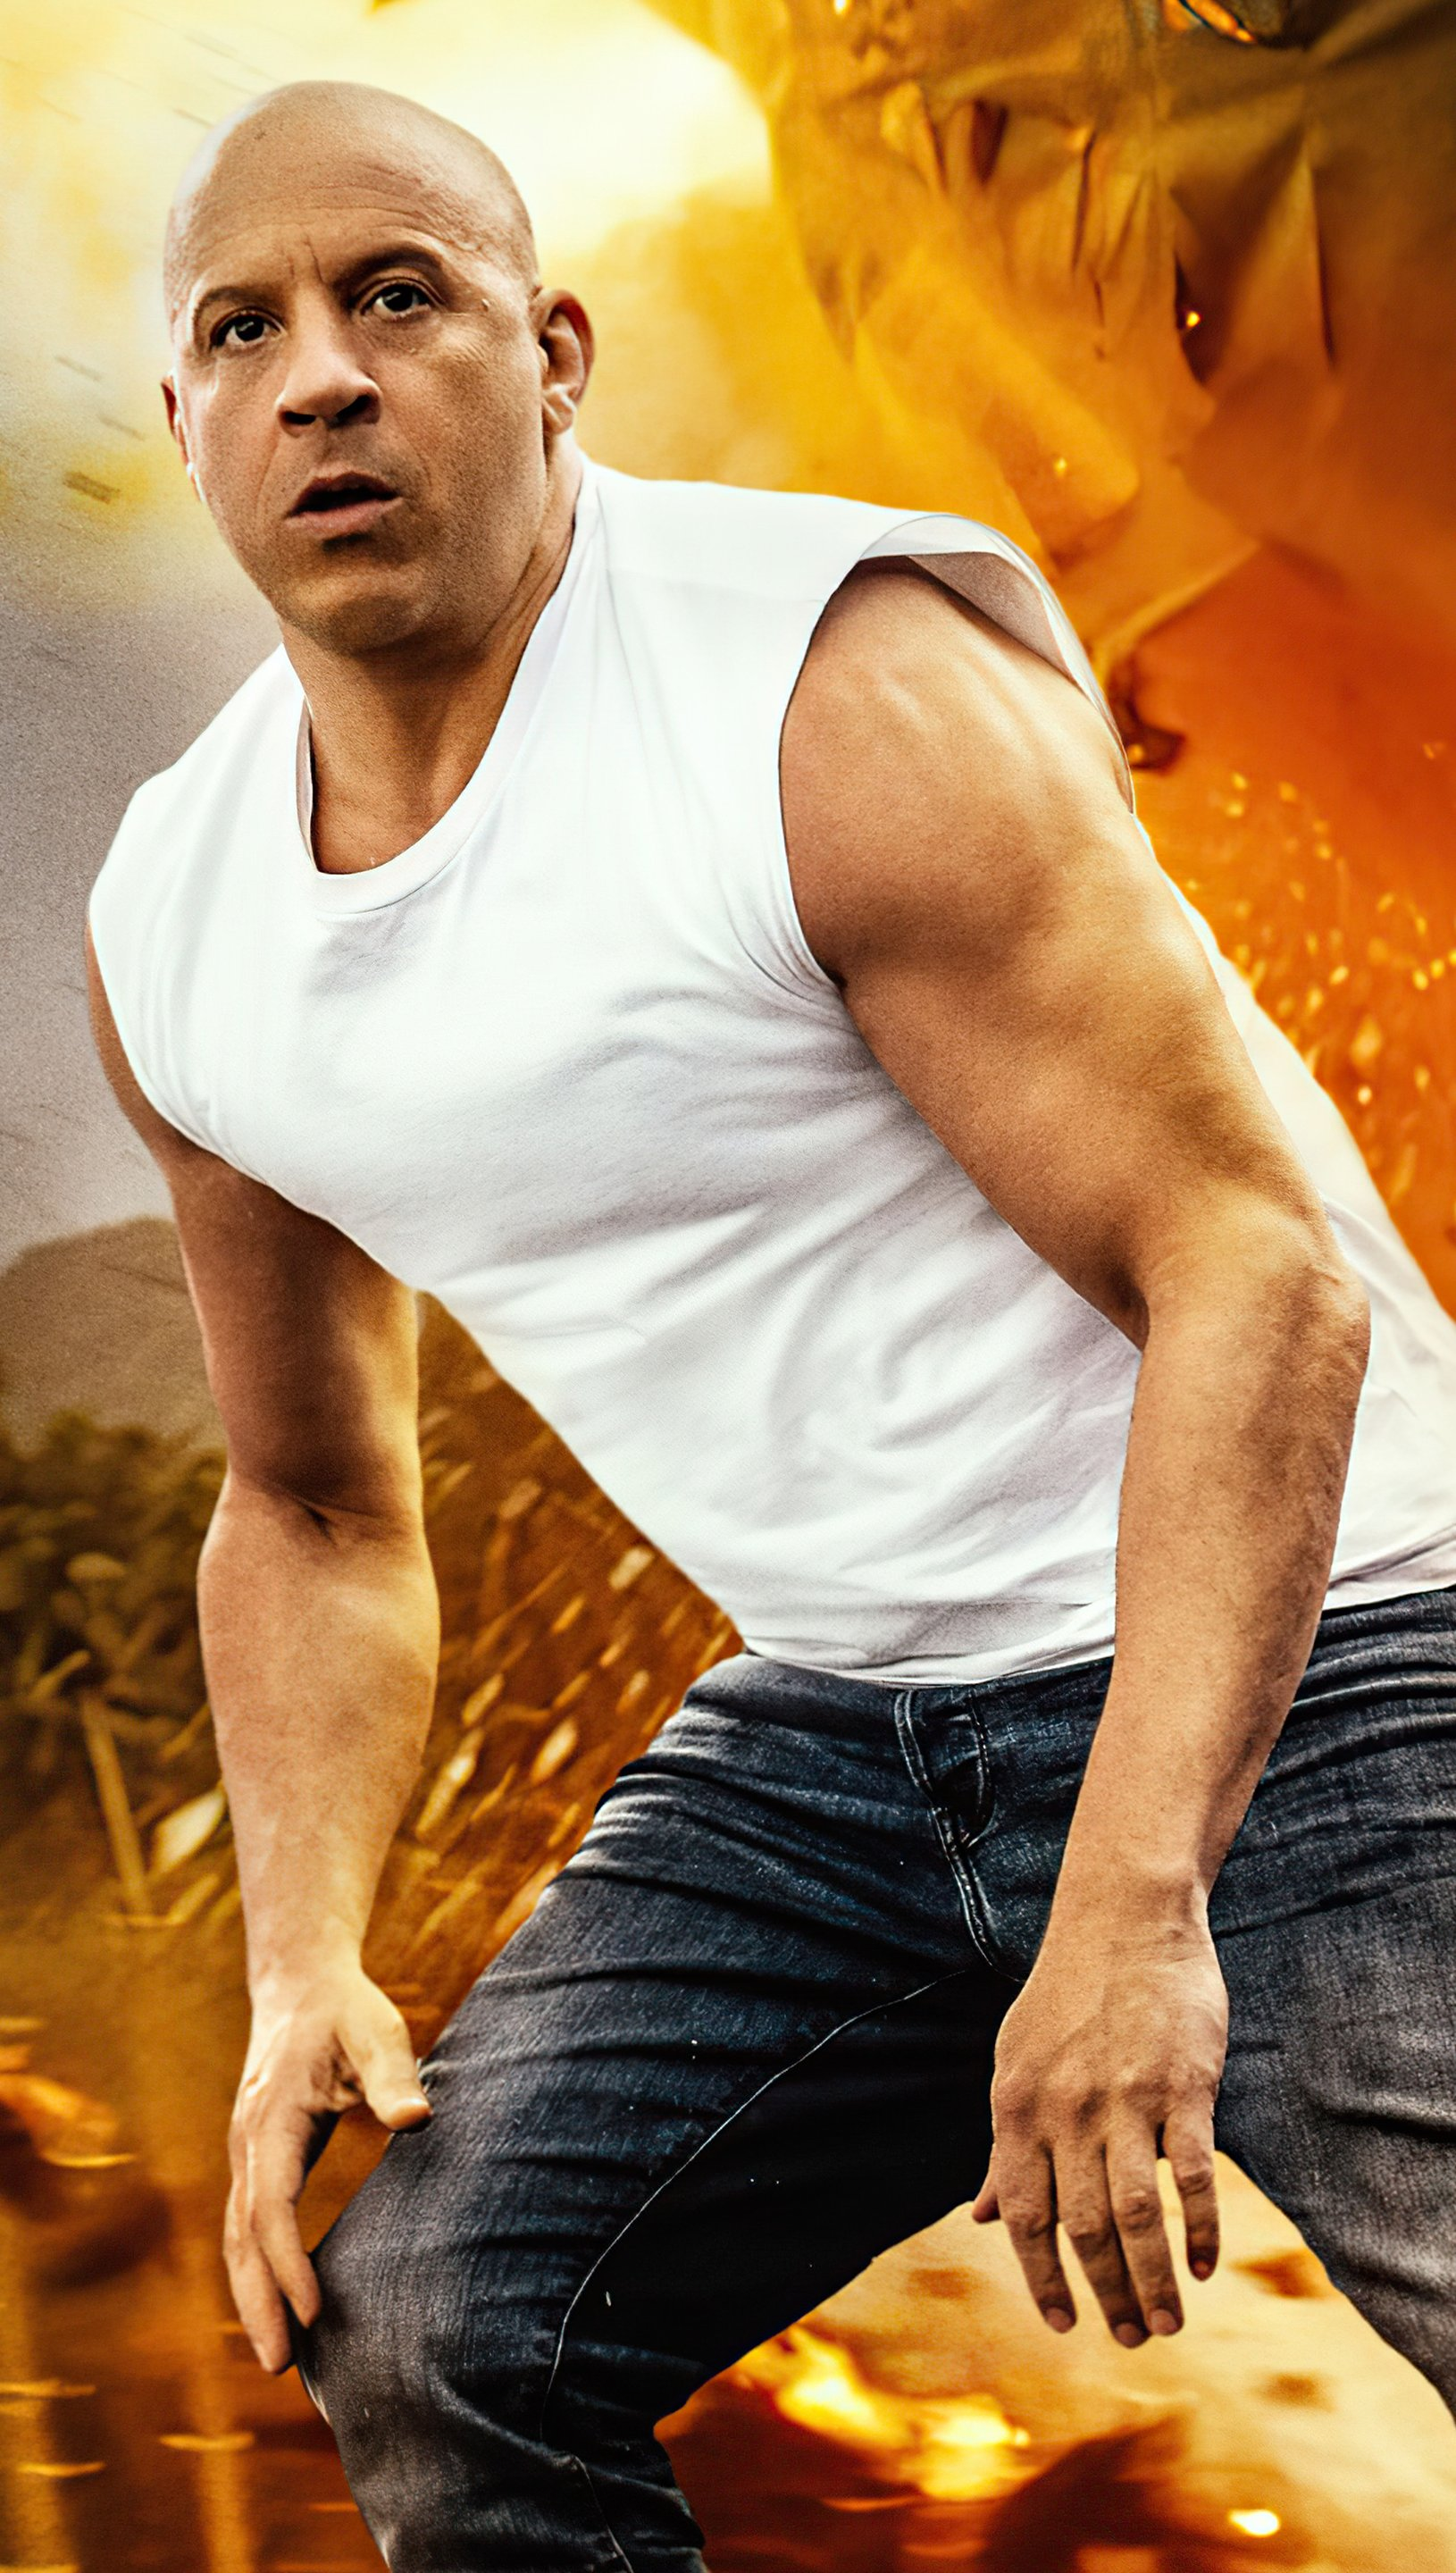 Wallpaper Vin Diesel as Dominic Toretto in Fast and furious 9 2021 Vertical